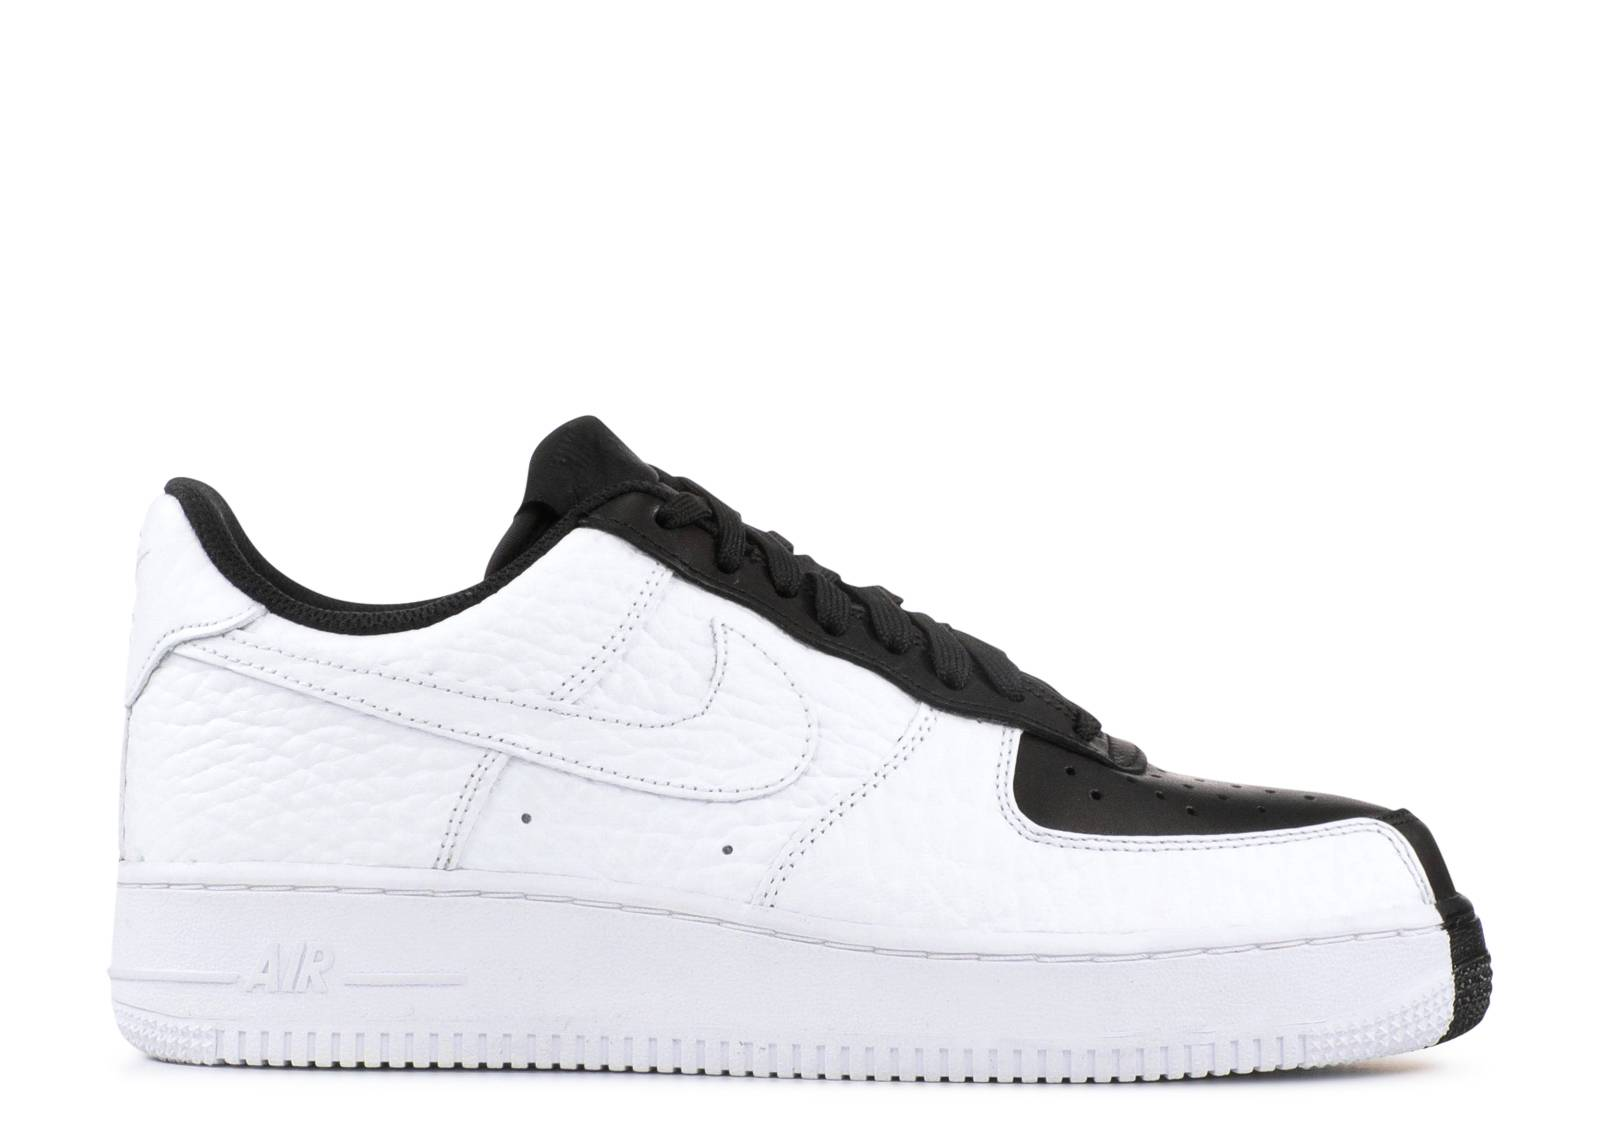 61717d61 Air Force 1 Low '07 LV8 'Split'